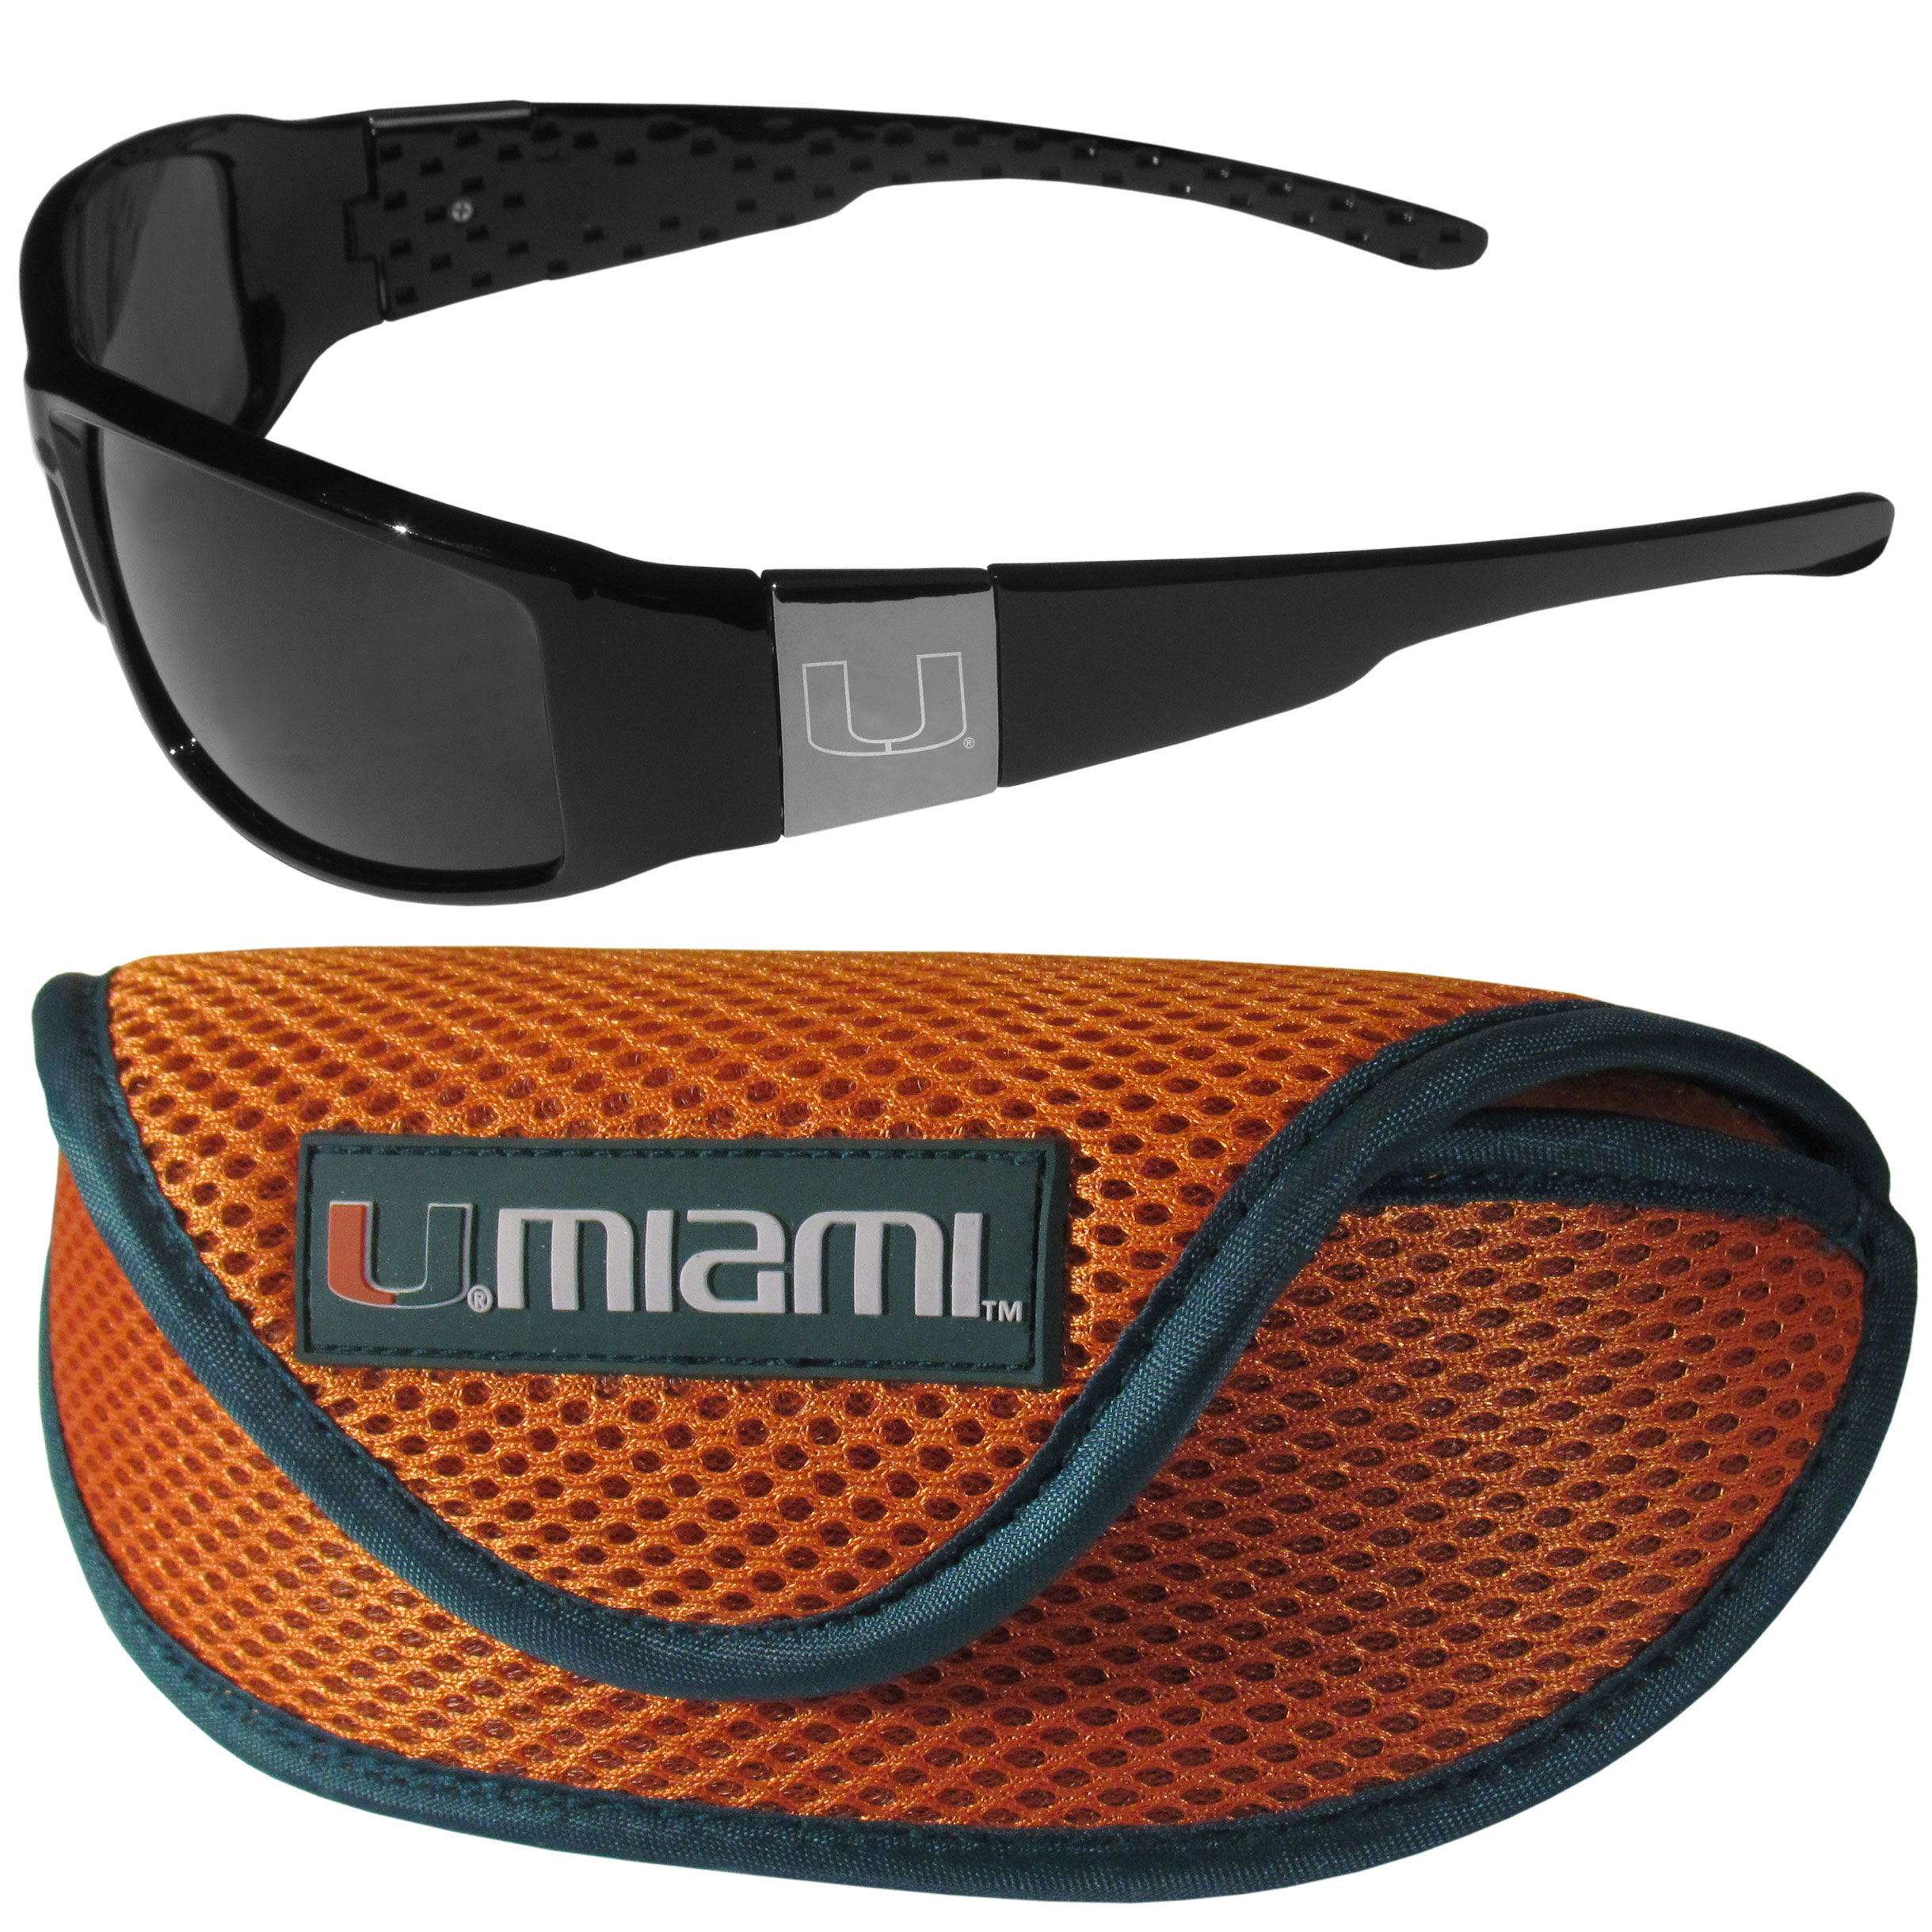 Miami Hurricanes Chrome Wrap Sunglasses and Sport Carrying Case - These designer inspired frames have a sleek look in all black with high-polish chrome Miami Hurricanes shields on each arm with an etched logo. The shades are perfect any outdoor activity like; golfing, driving, hiking, fishing or cheering on the team at a tailgating event or an at home game day BBQ with a lens rating of 100% UVA/UVB for maximum UV protection. The high-quality frames are as durable as they are fashionable and with their classic look they are perfect fan accessory that can be worn everyday for every occasion. The shades come with a zippered hard shell case to keep your sunglasses safe.